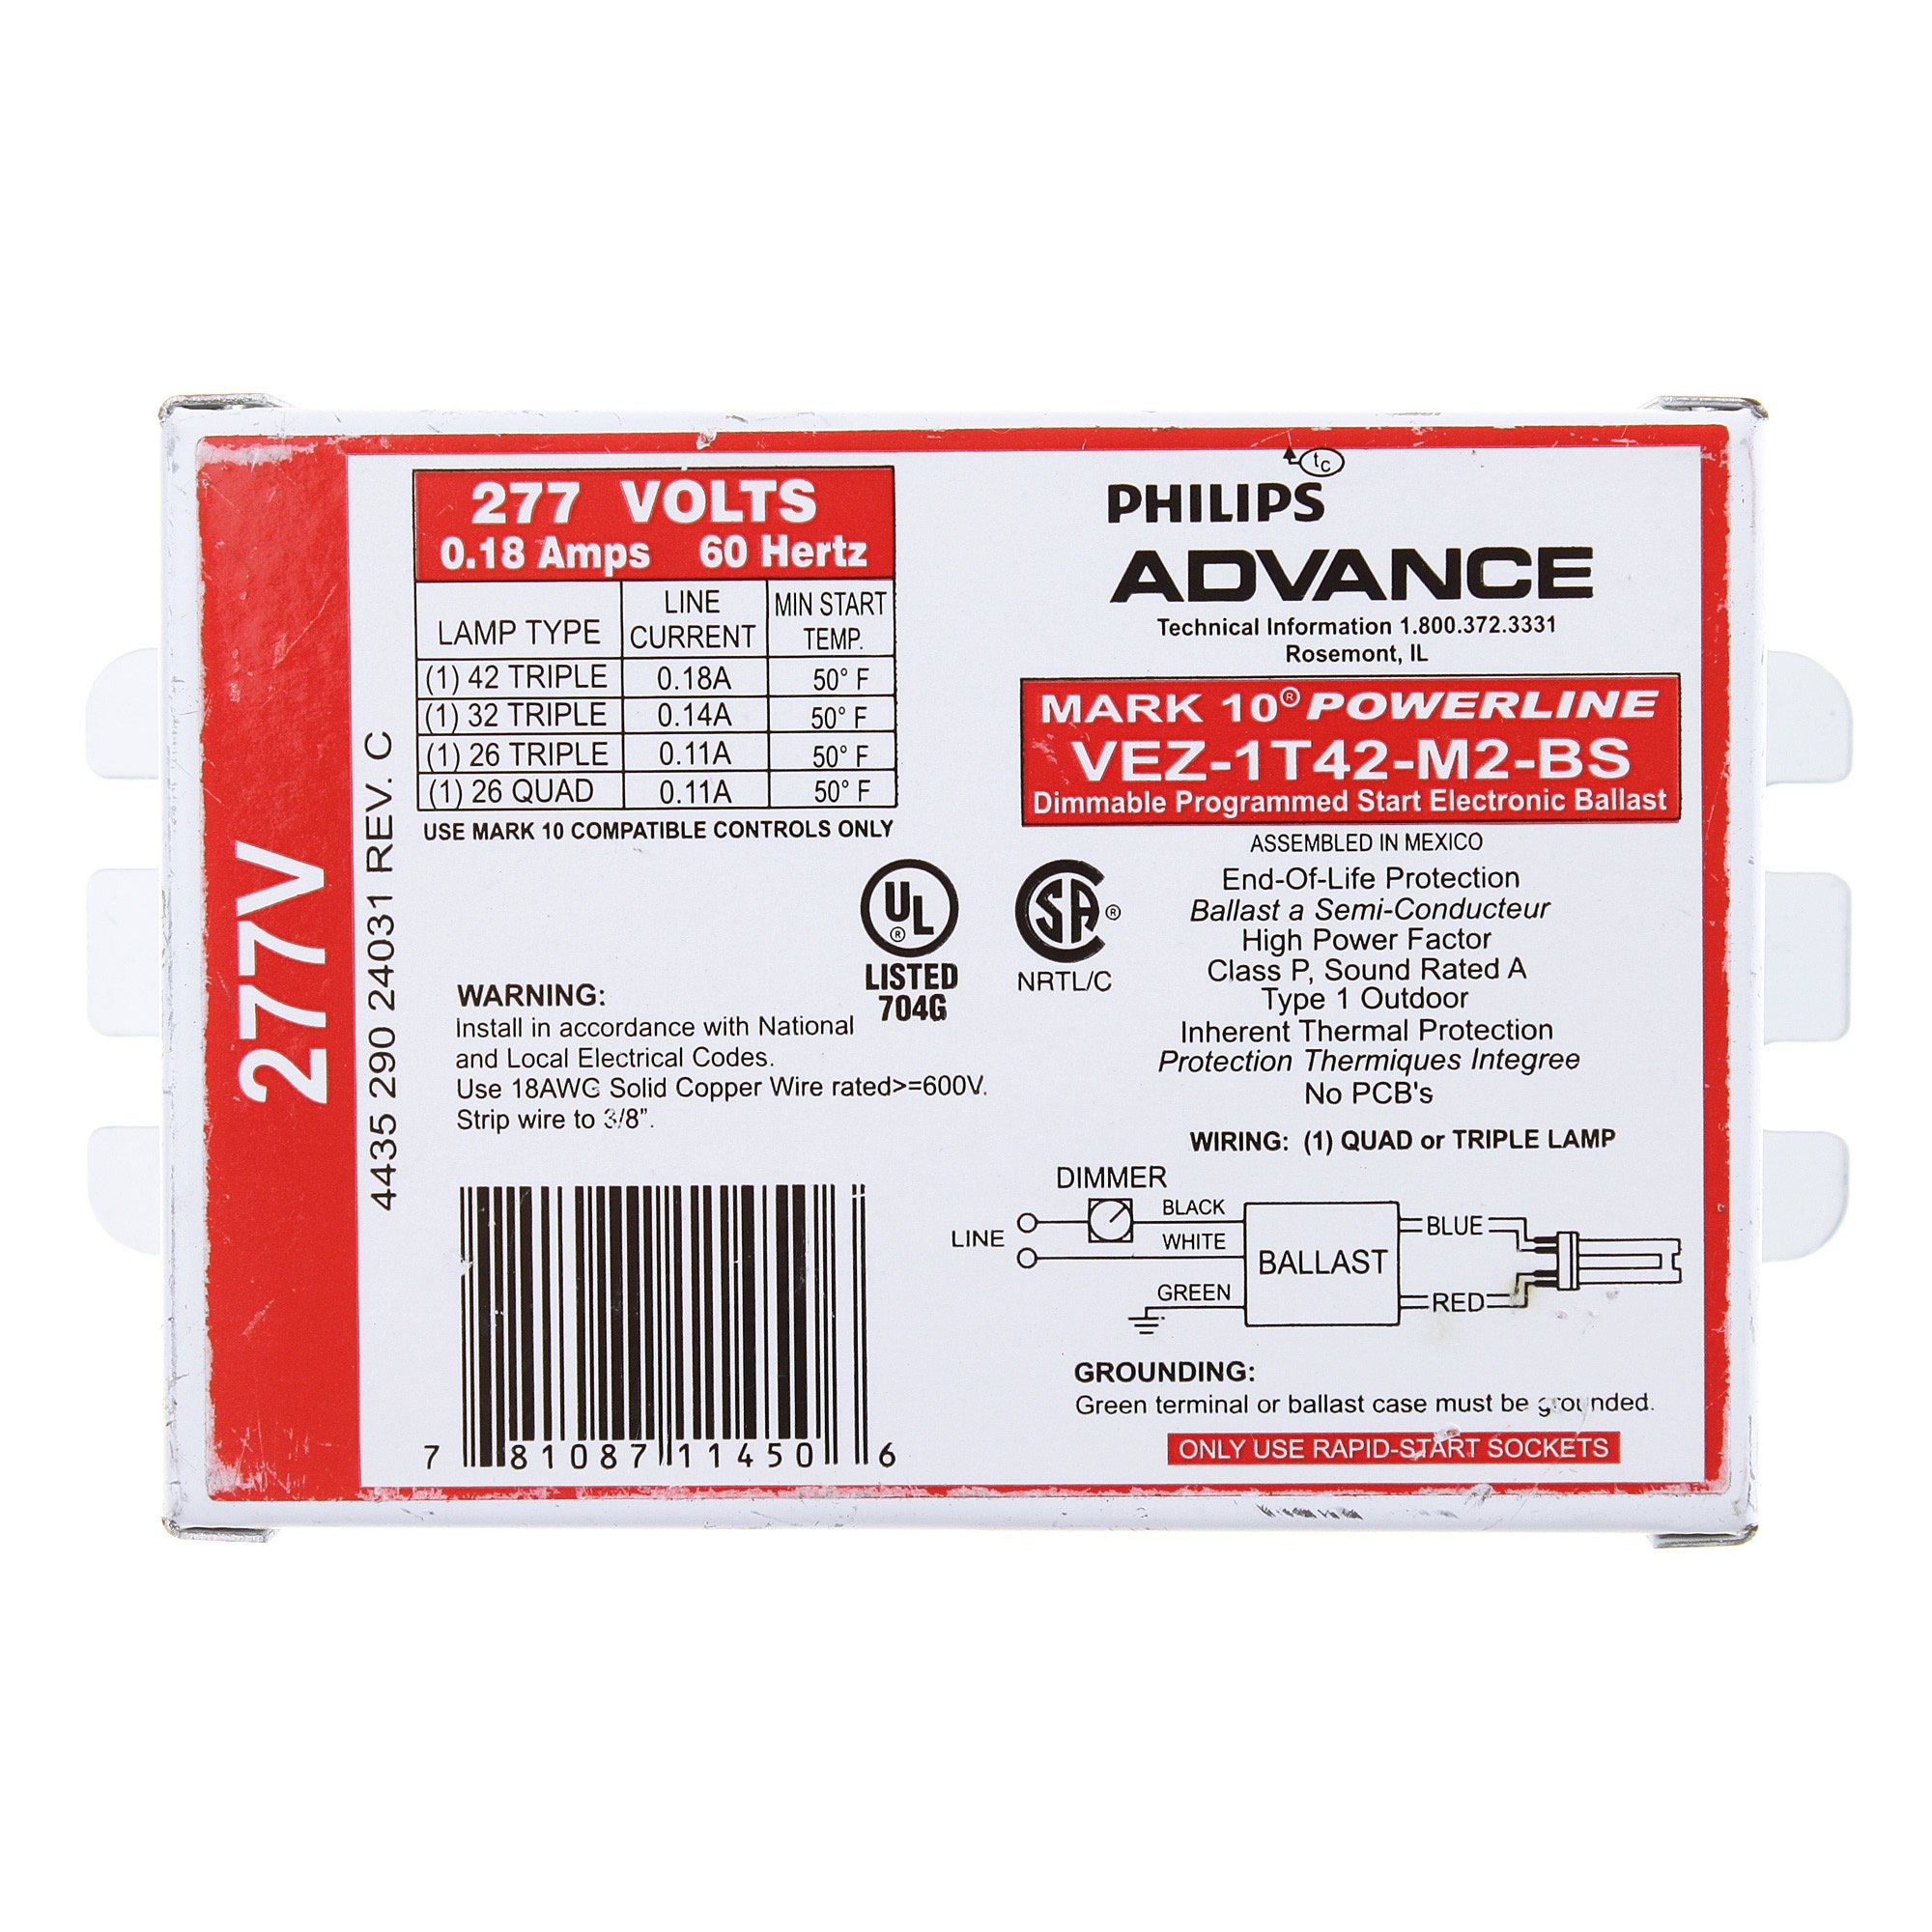 Philips Advance VEZ-1T42-M2-BS Mark 10 Powerline Dimmable Programmed Ballast